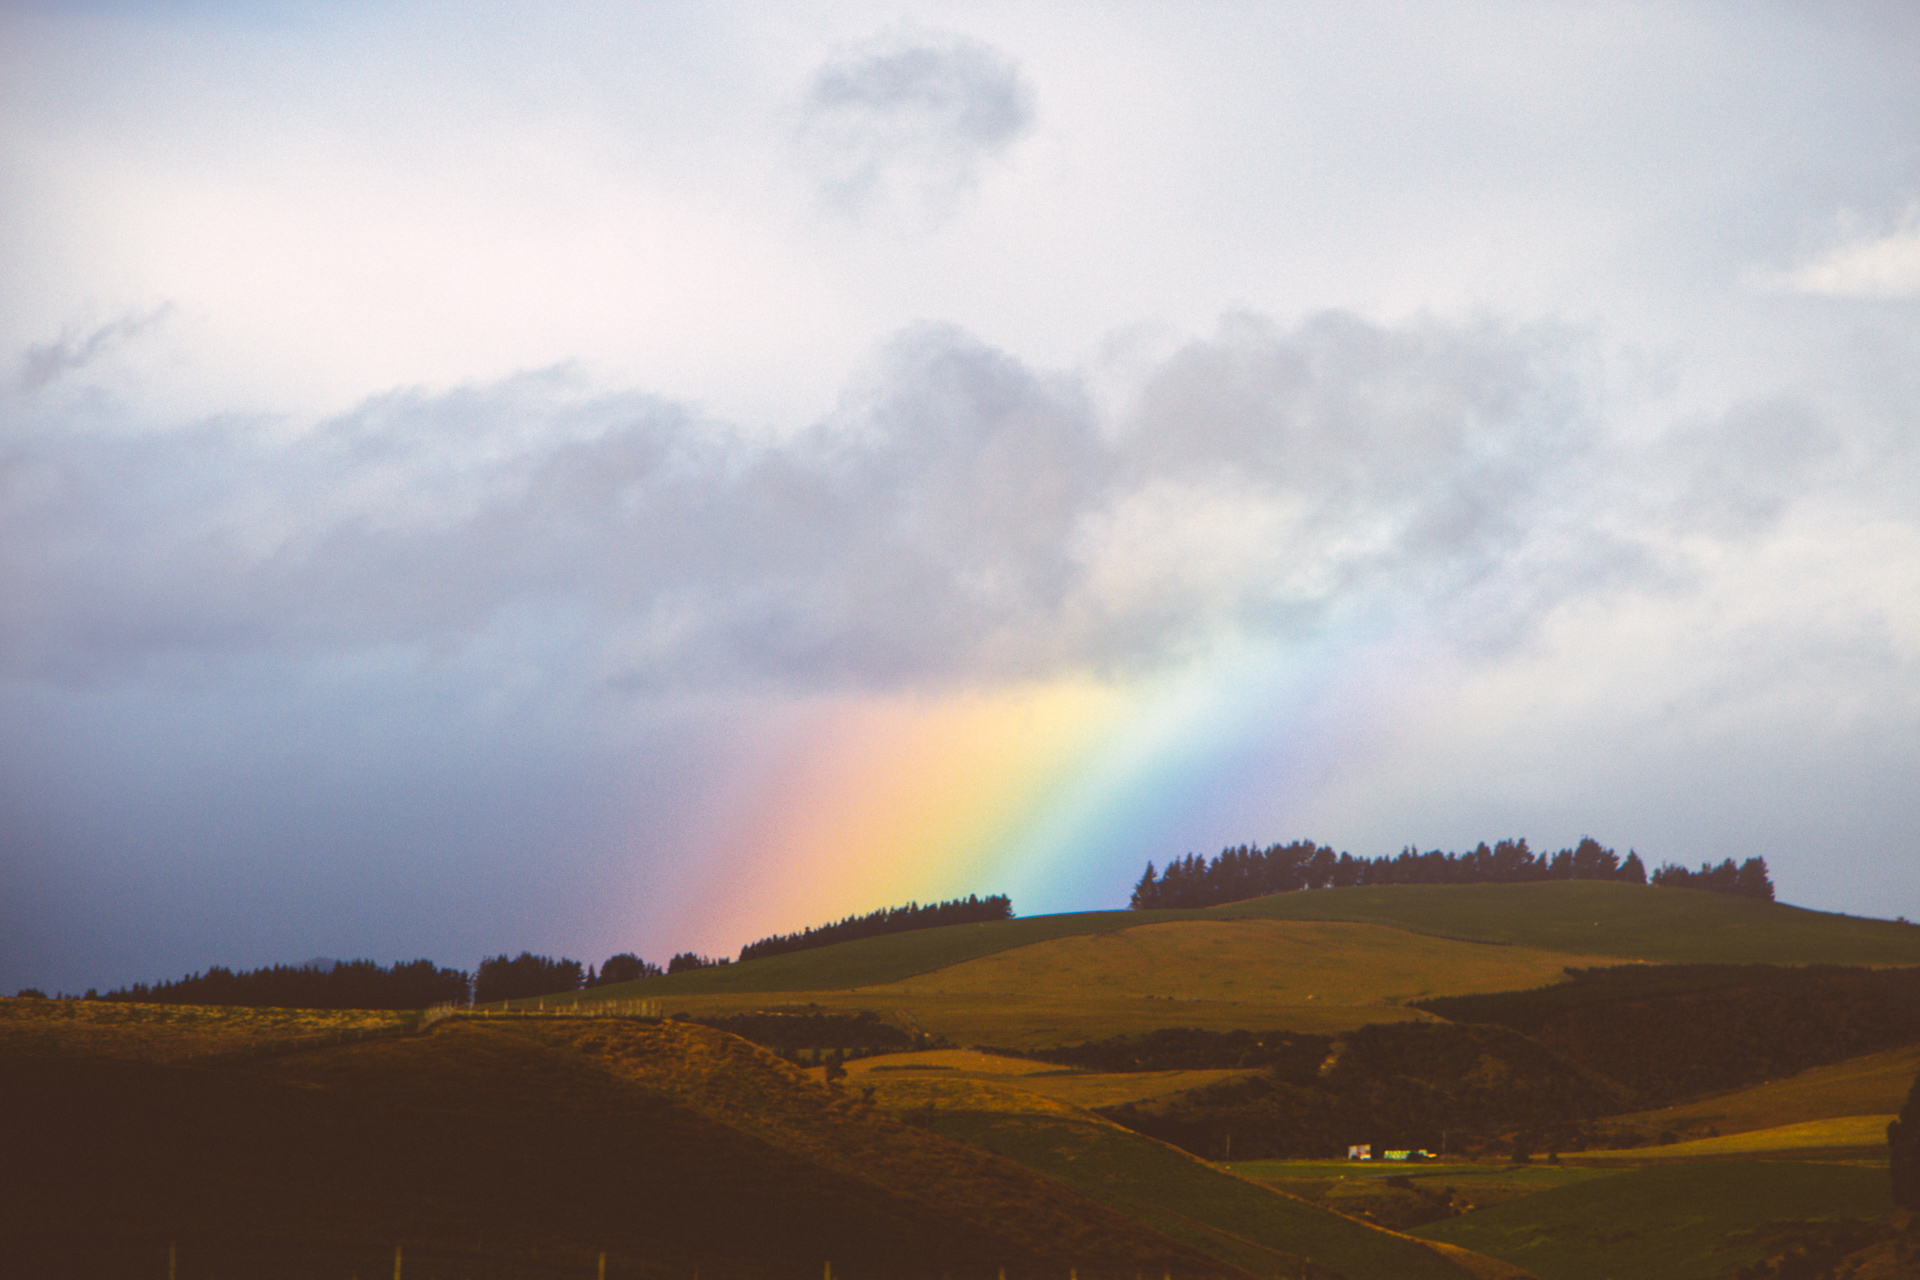 Rainbow over New Zealand Mountains